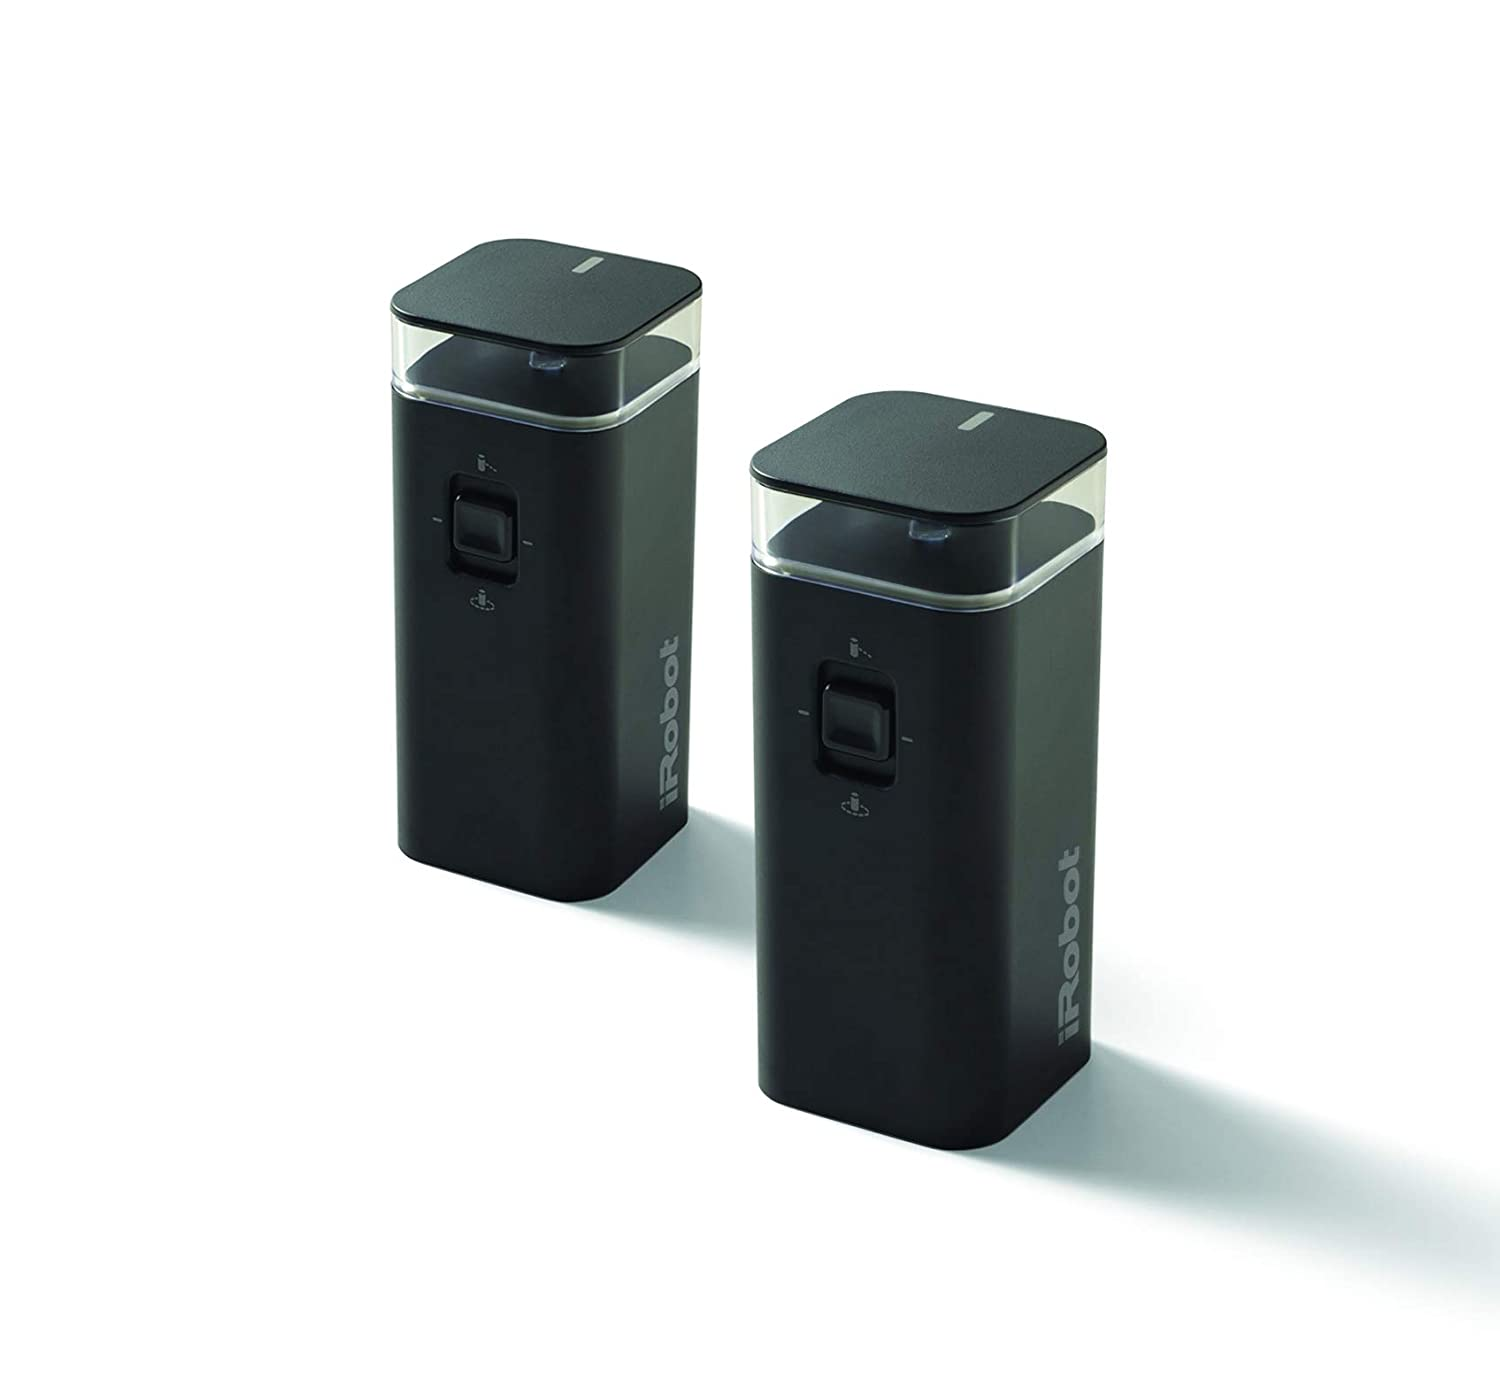 iRobot Dual Mode Virtual Wall Barrier, 2-Pack Accessories, Black